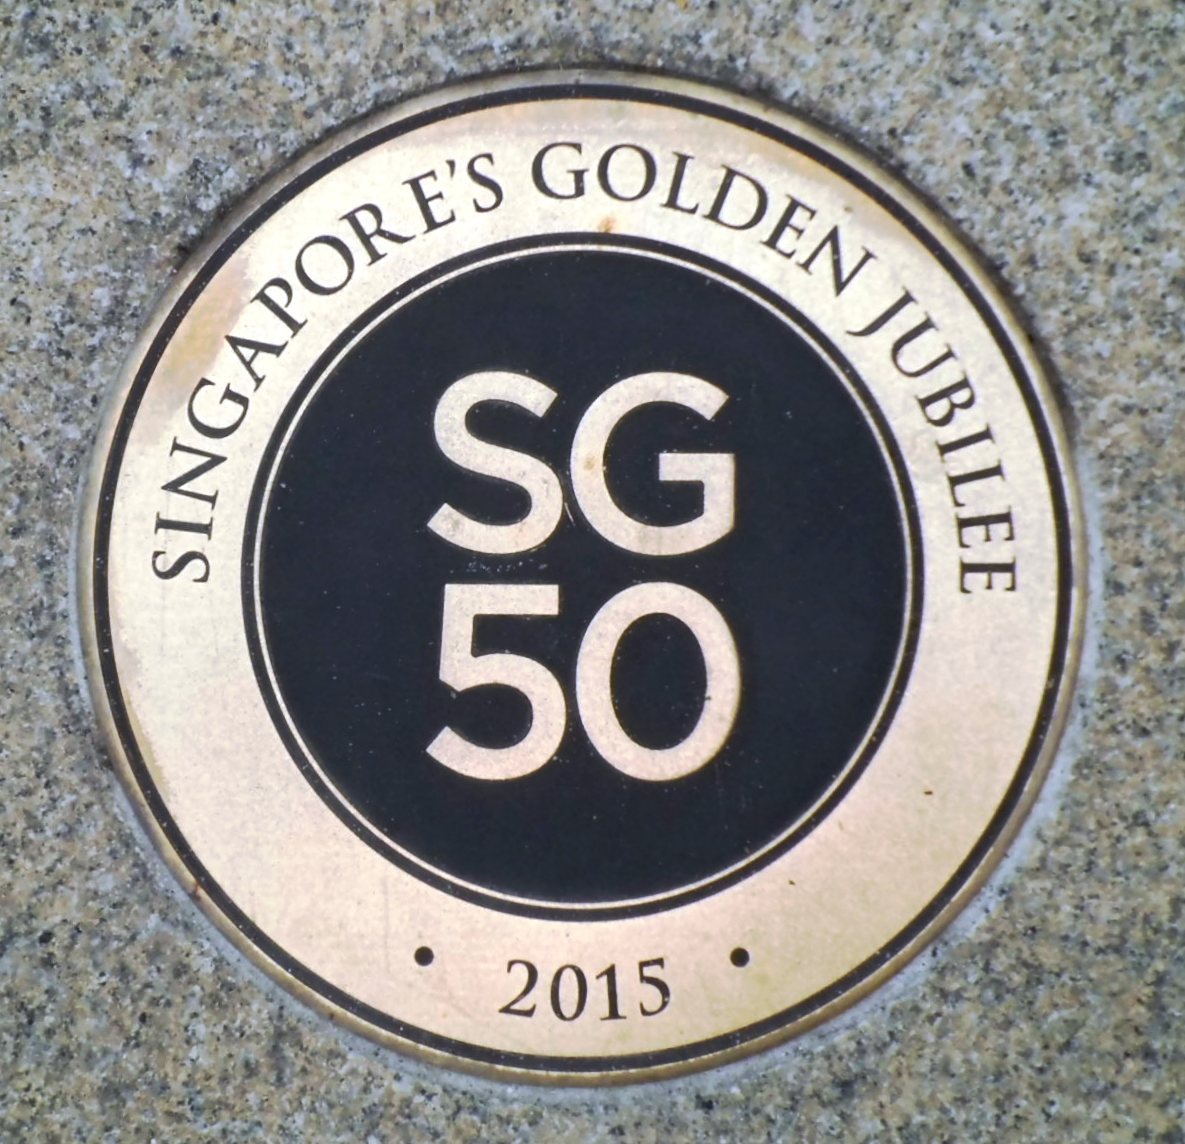 The SG50 Jubilee Big Walk included part of a permanent 8km commemorative trail, known as the Jubilee Walk, which connects more than 20 historic and iconic locations within the Civic District and Marina Bay precinct.